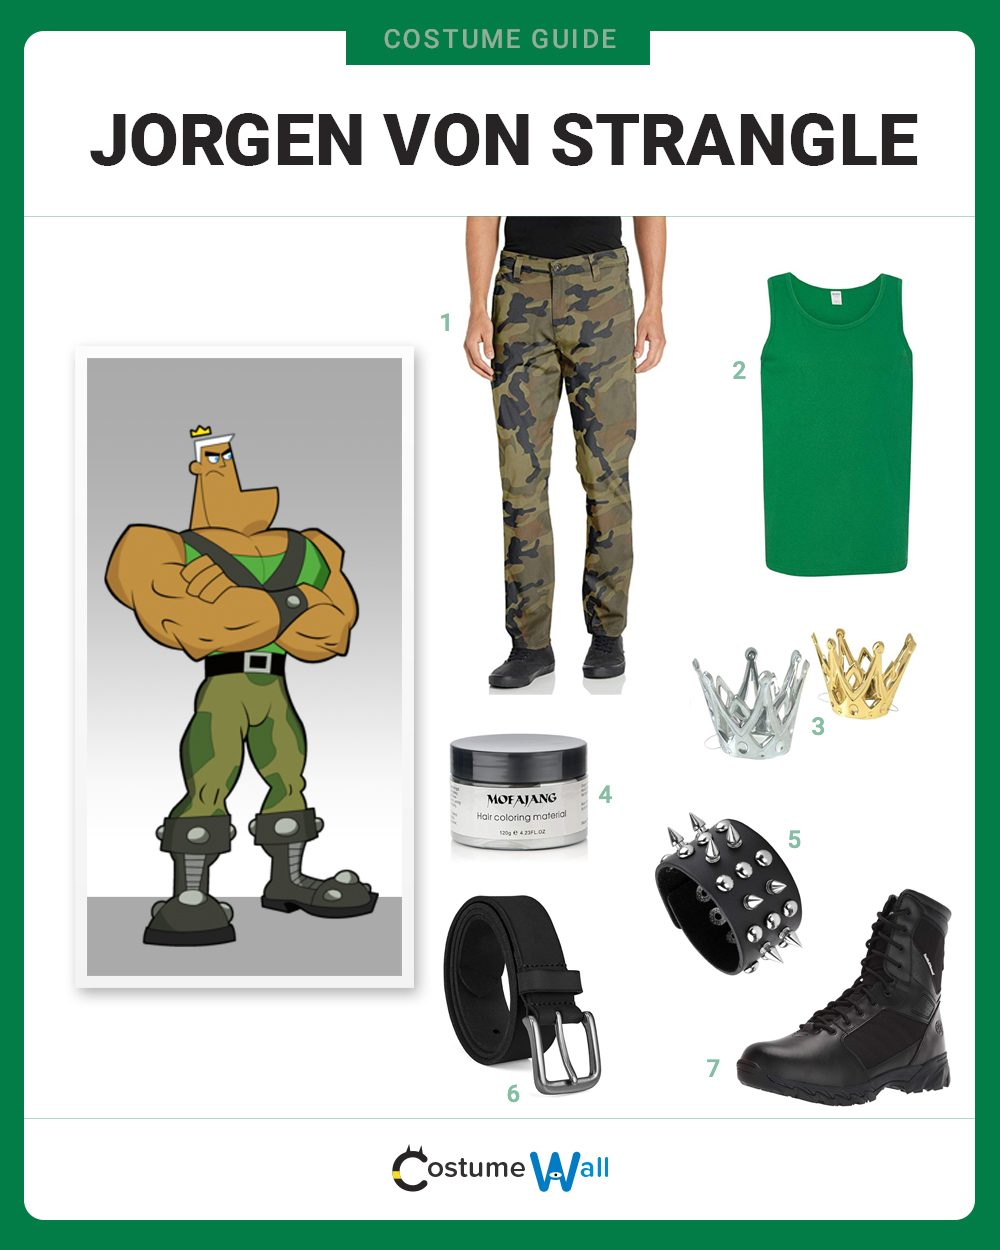 Jorgen Von Strangle Costume Guide